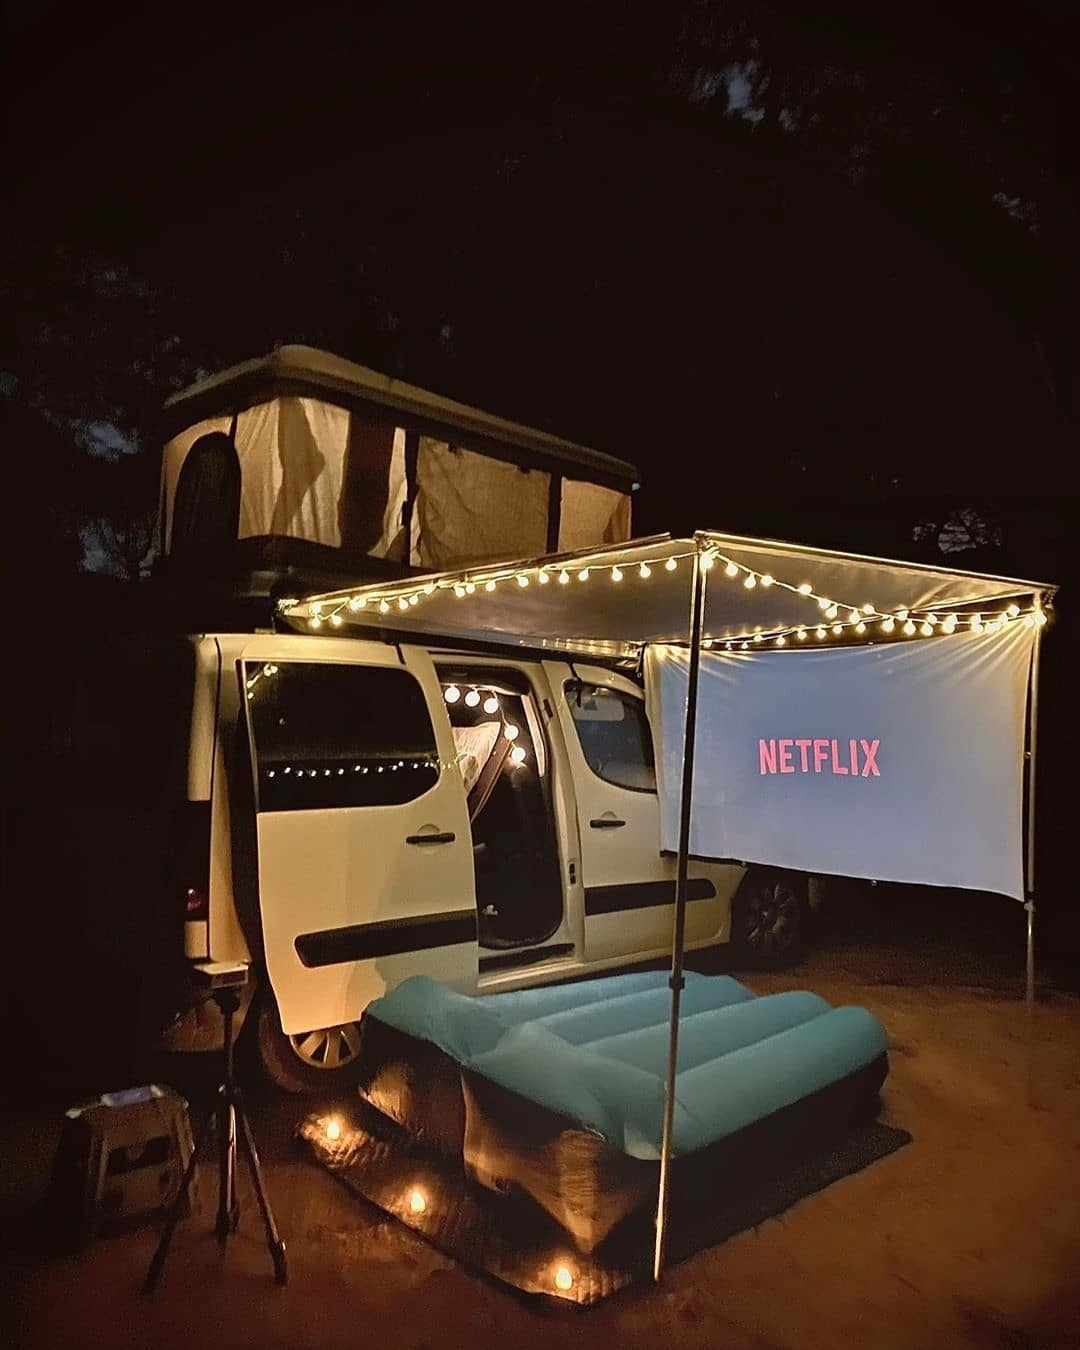 netflix screen outside camper van